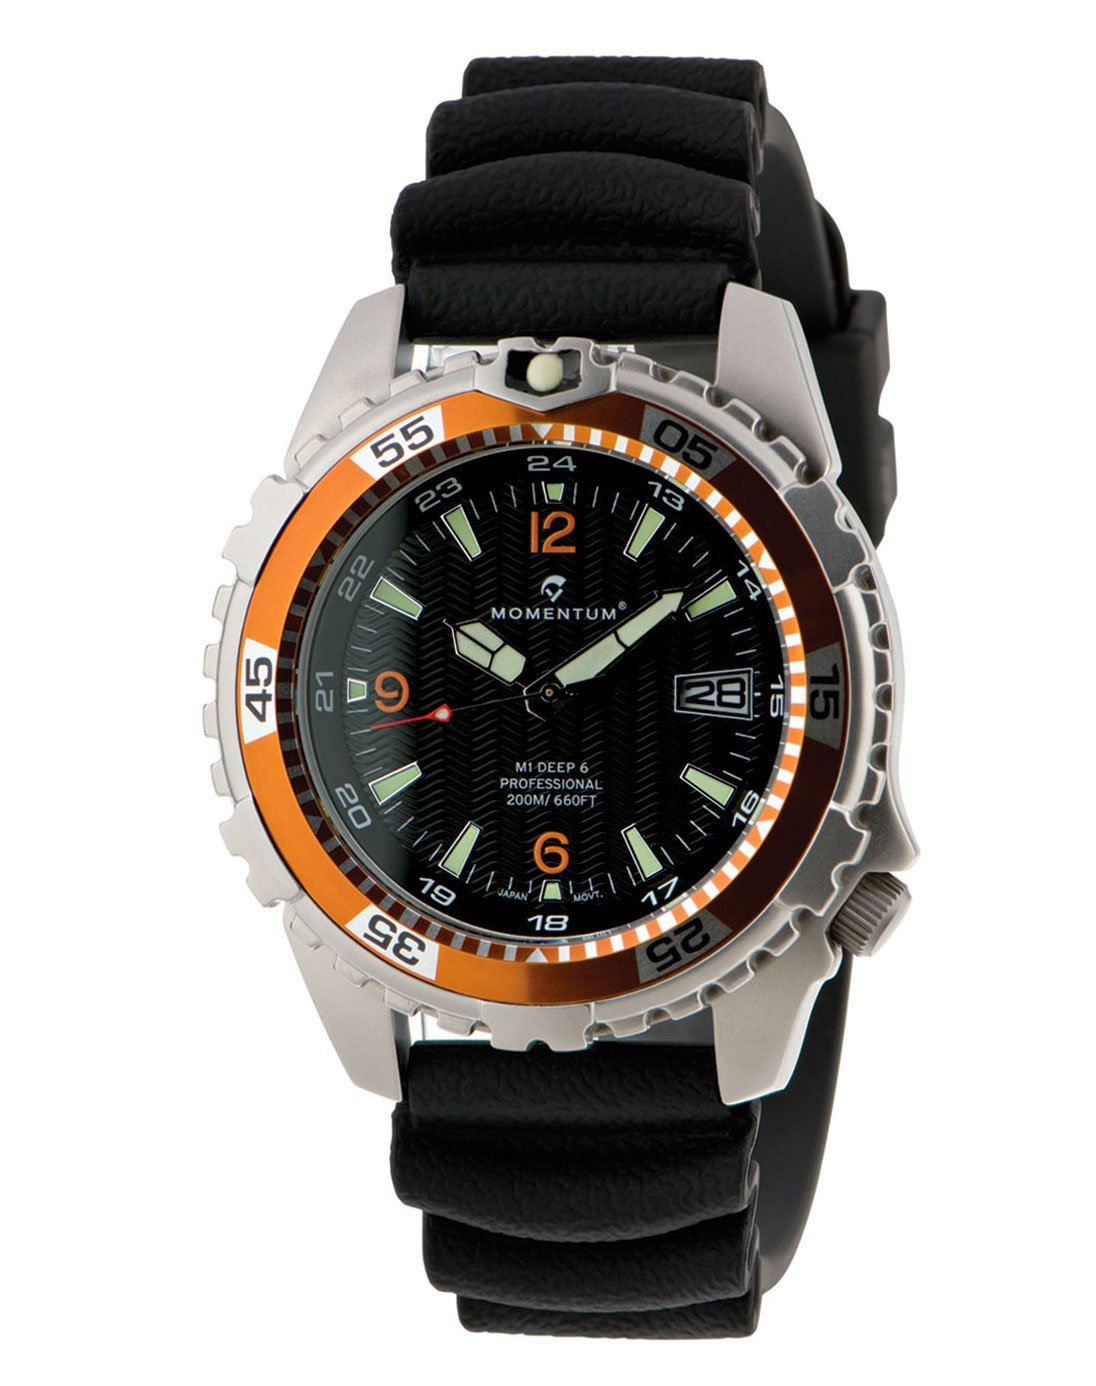 MOMENTUM Watch - M1 Deep 6 With Black Fitted Rubber Band